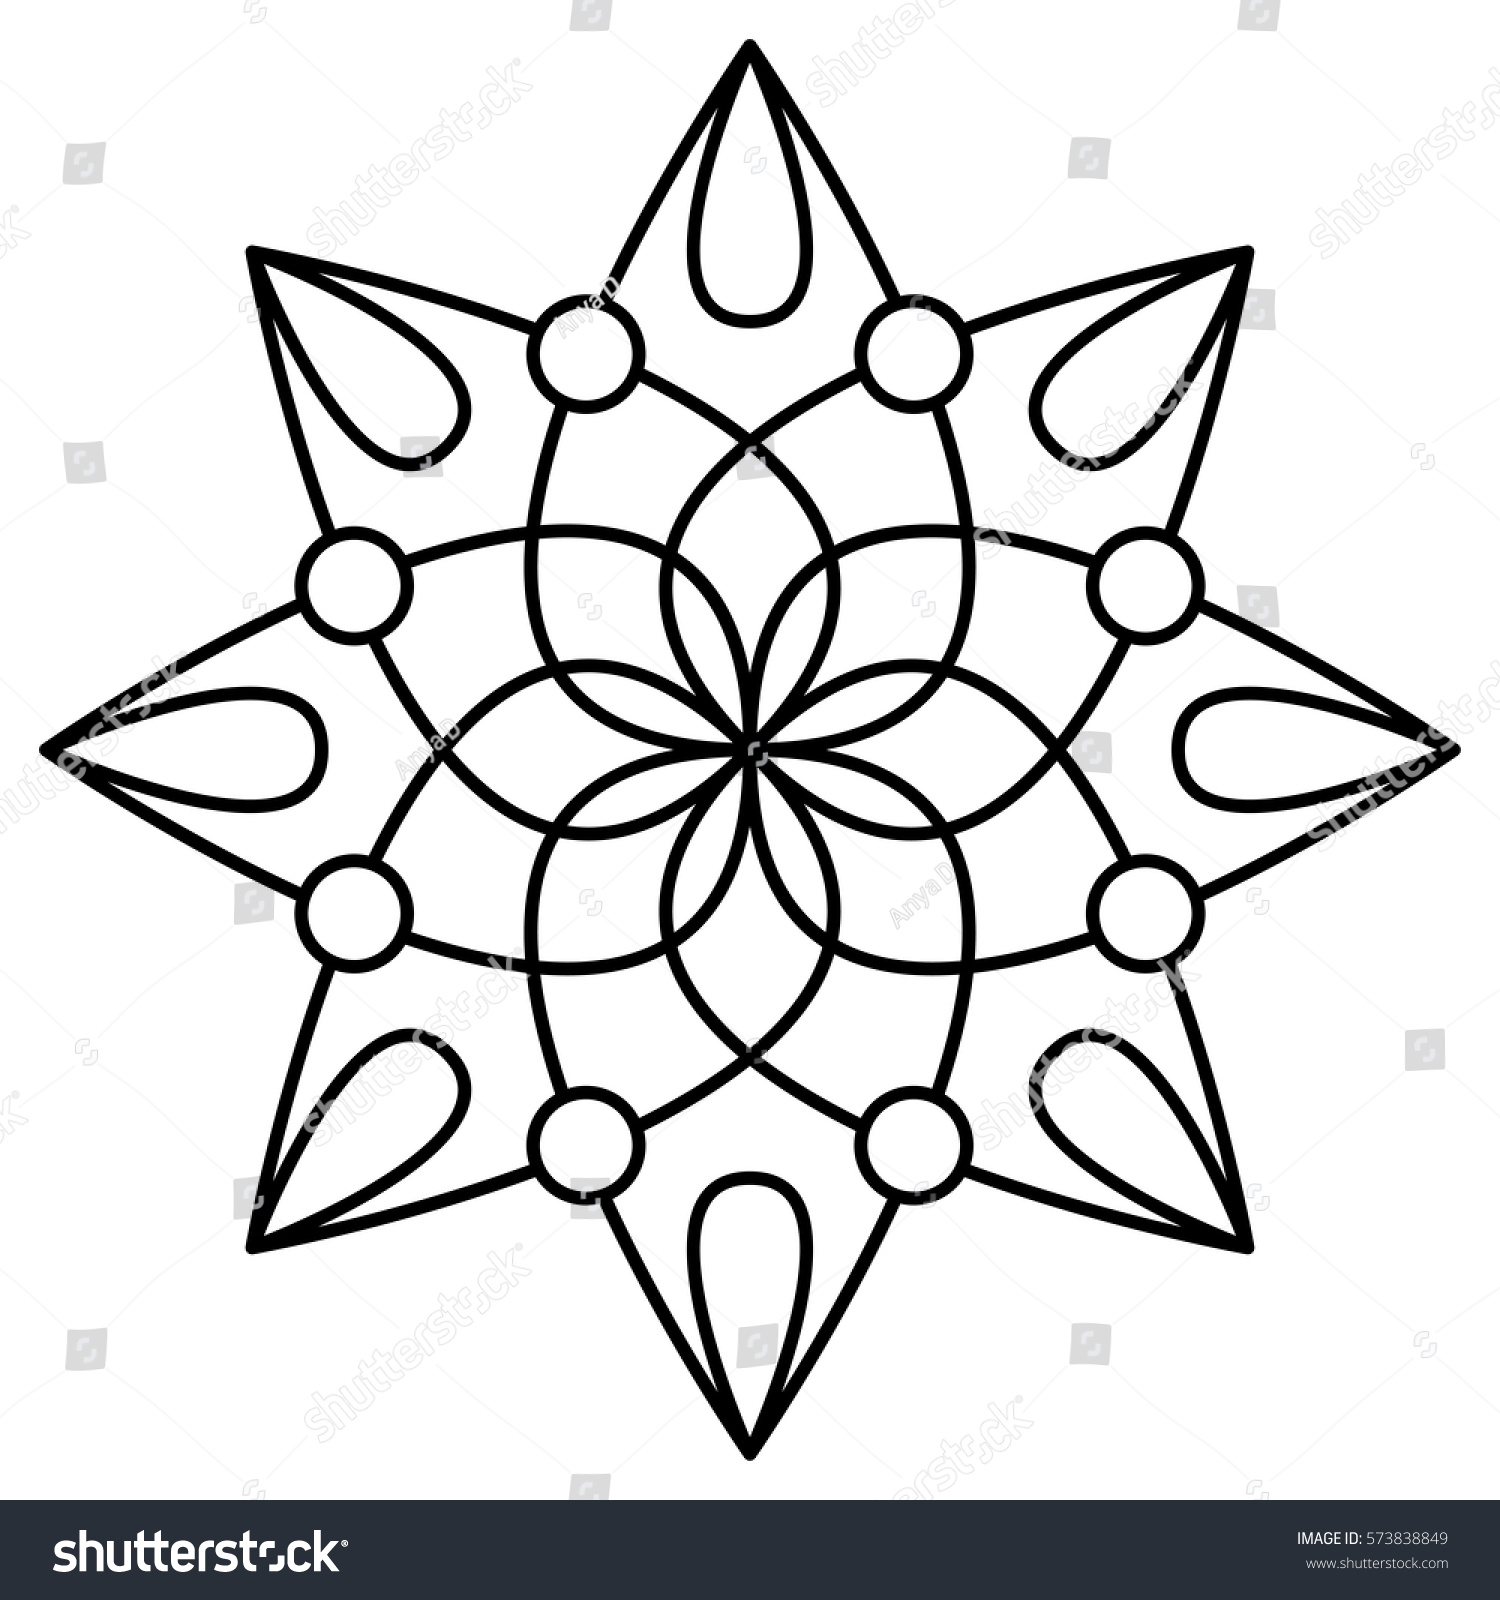 simple floral mandala pattern coloring book stock vector 573838849 shutterstock. Black Bedroom Furniture Sets. Home Design Ideas